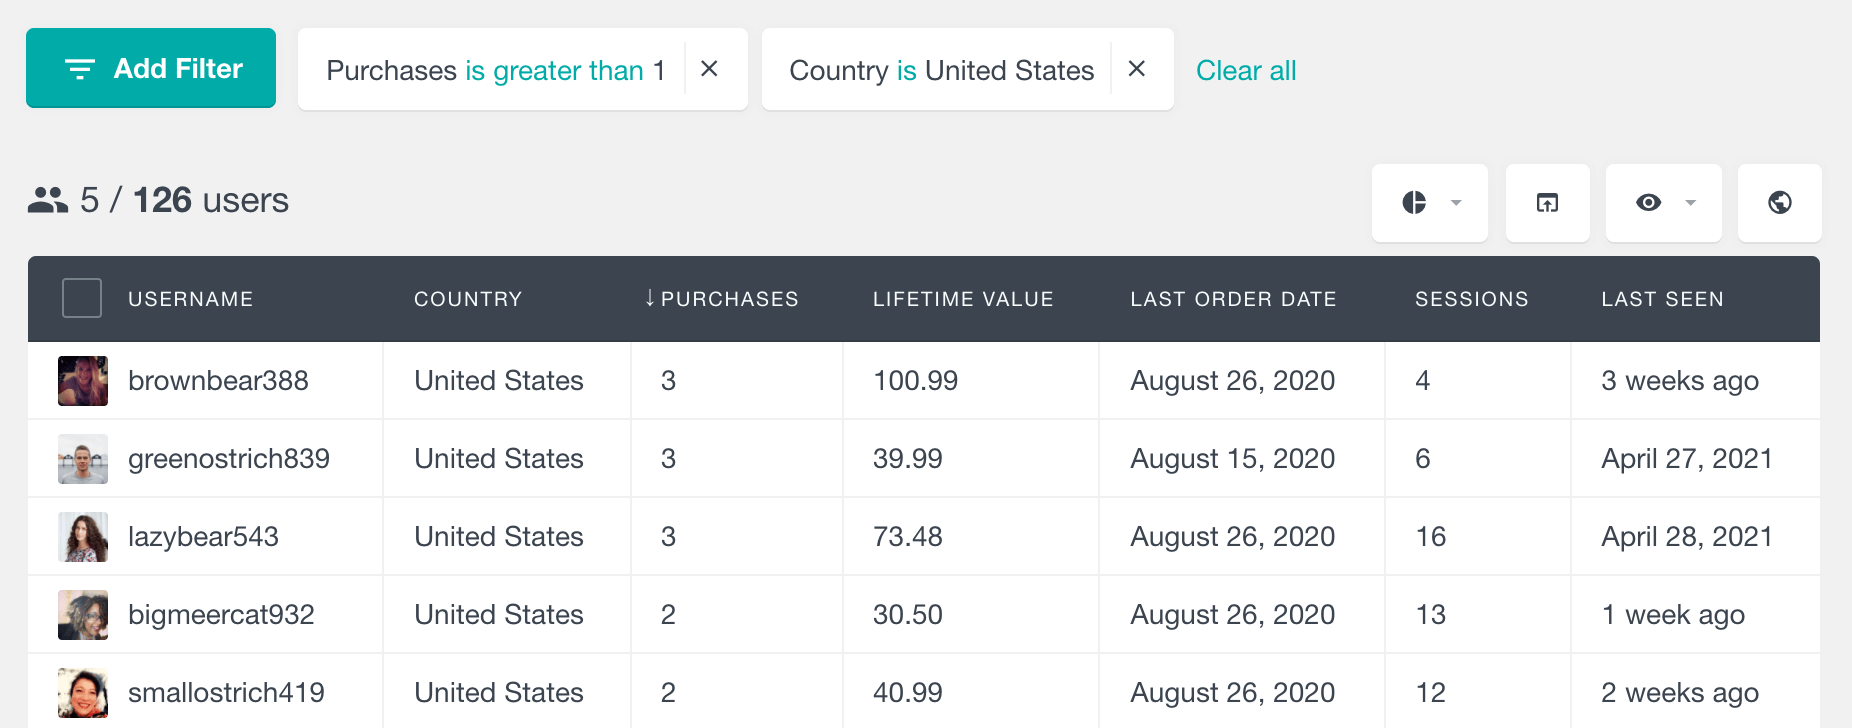 Easy Digital Downloads filter by number of orders and country